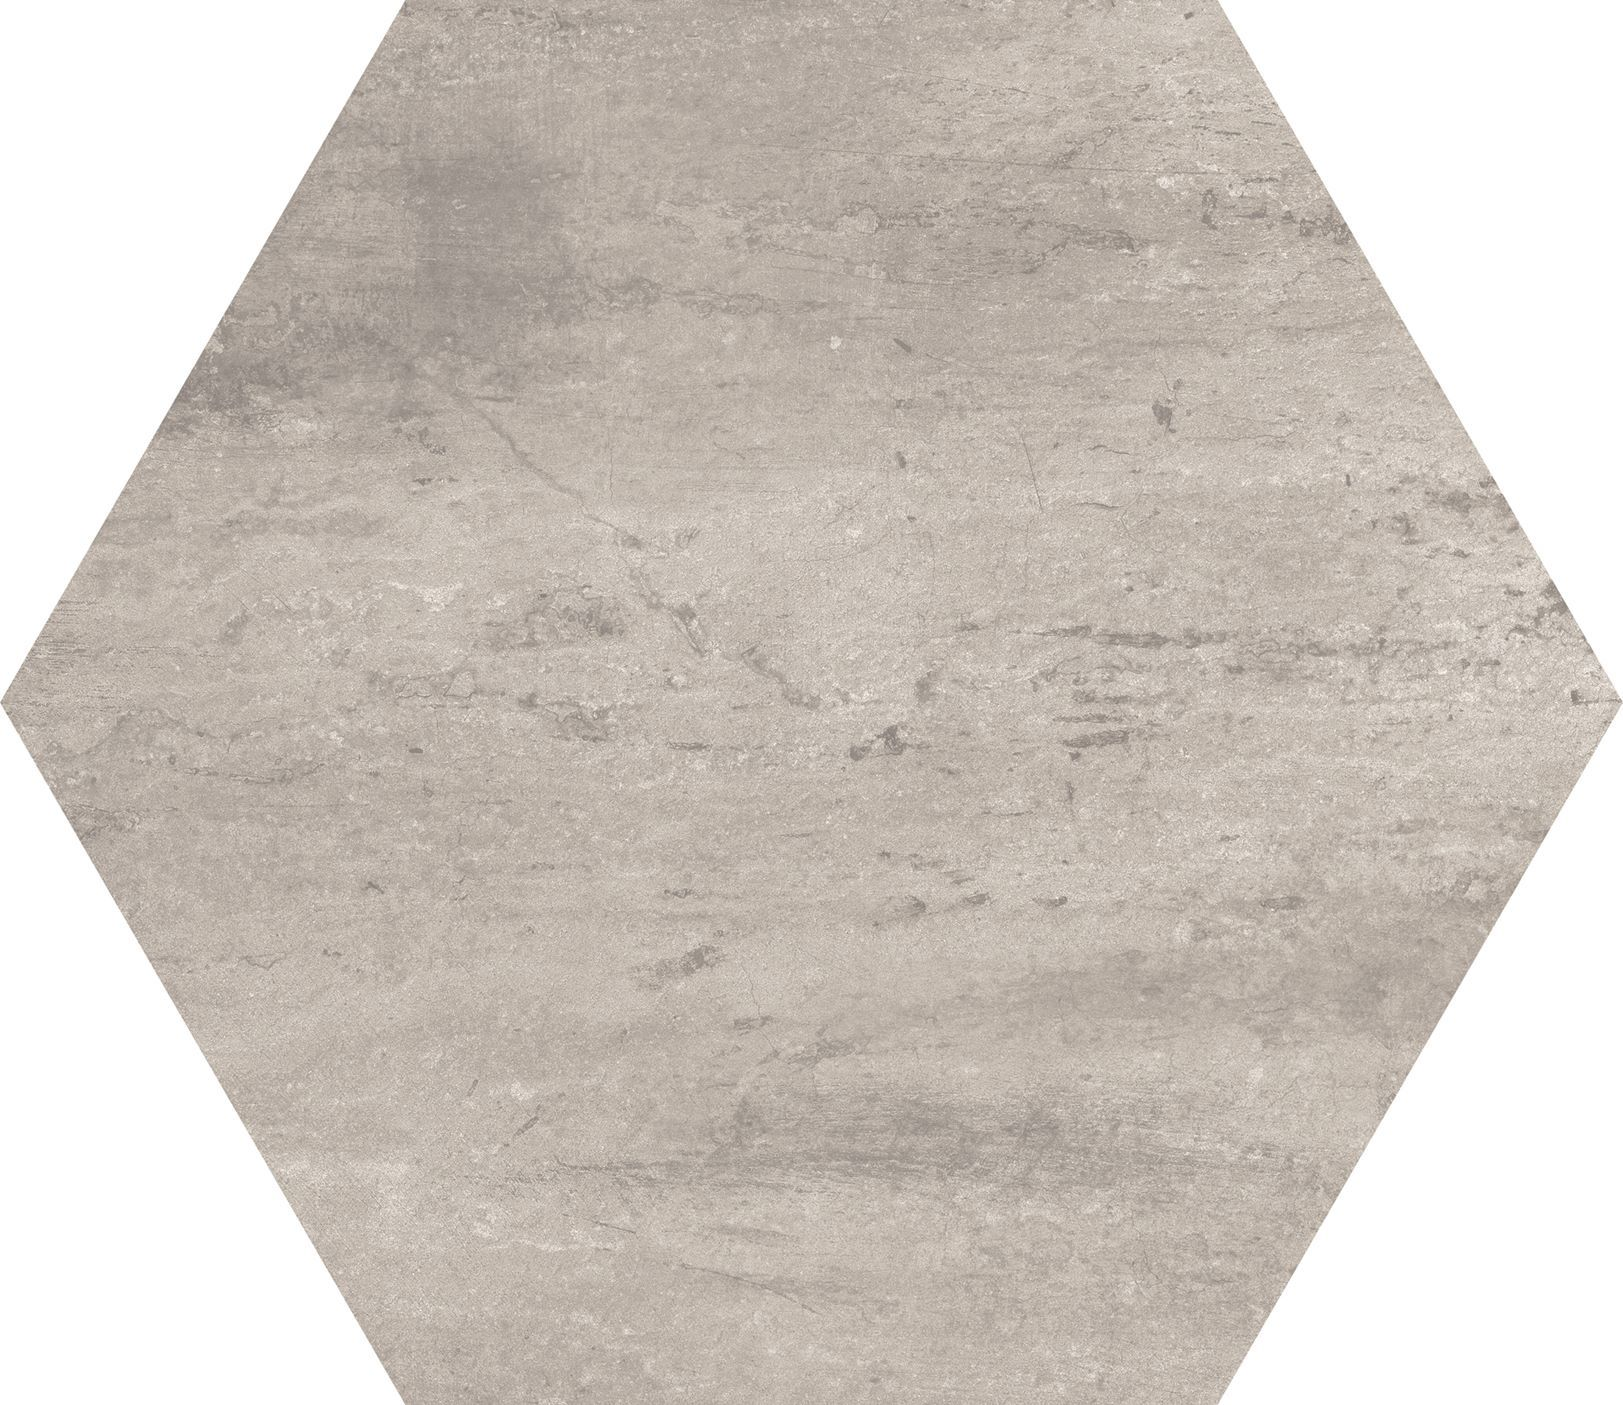 10 x 10 Concrete Moka Hexagon porcelain tile